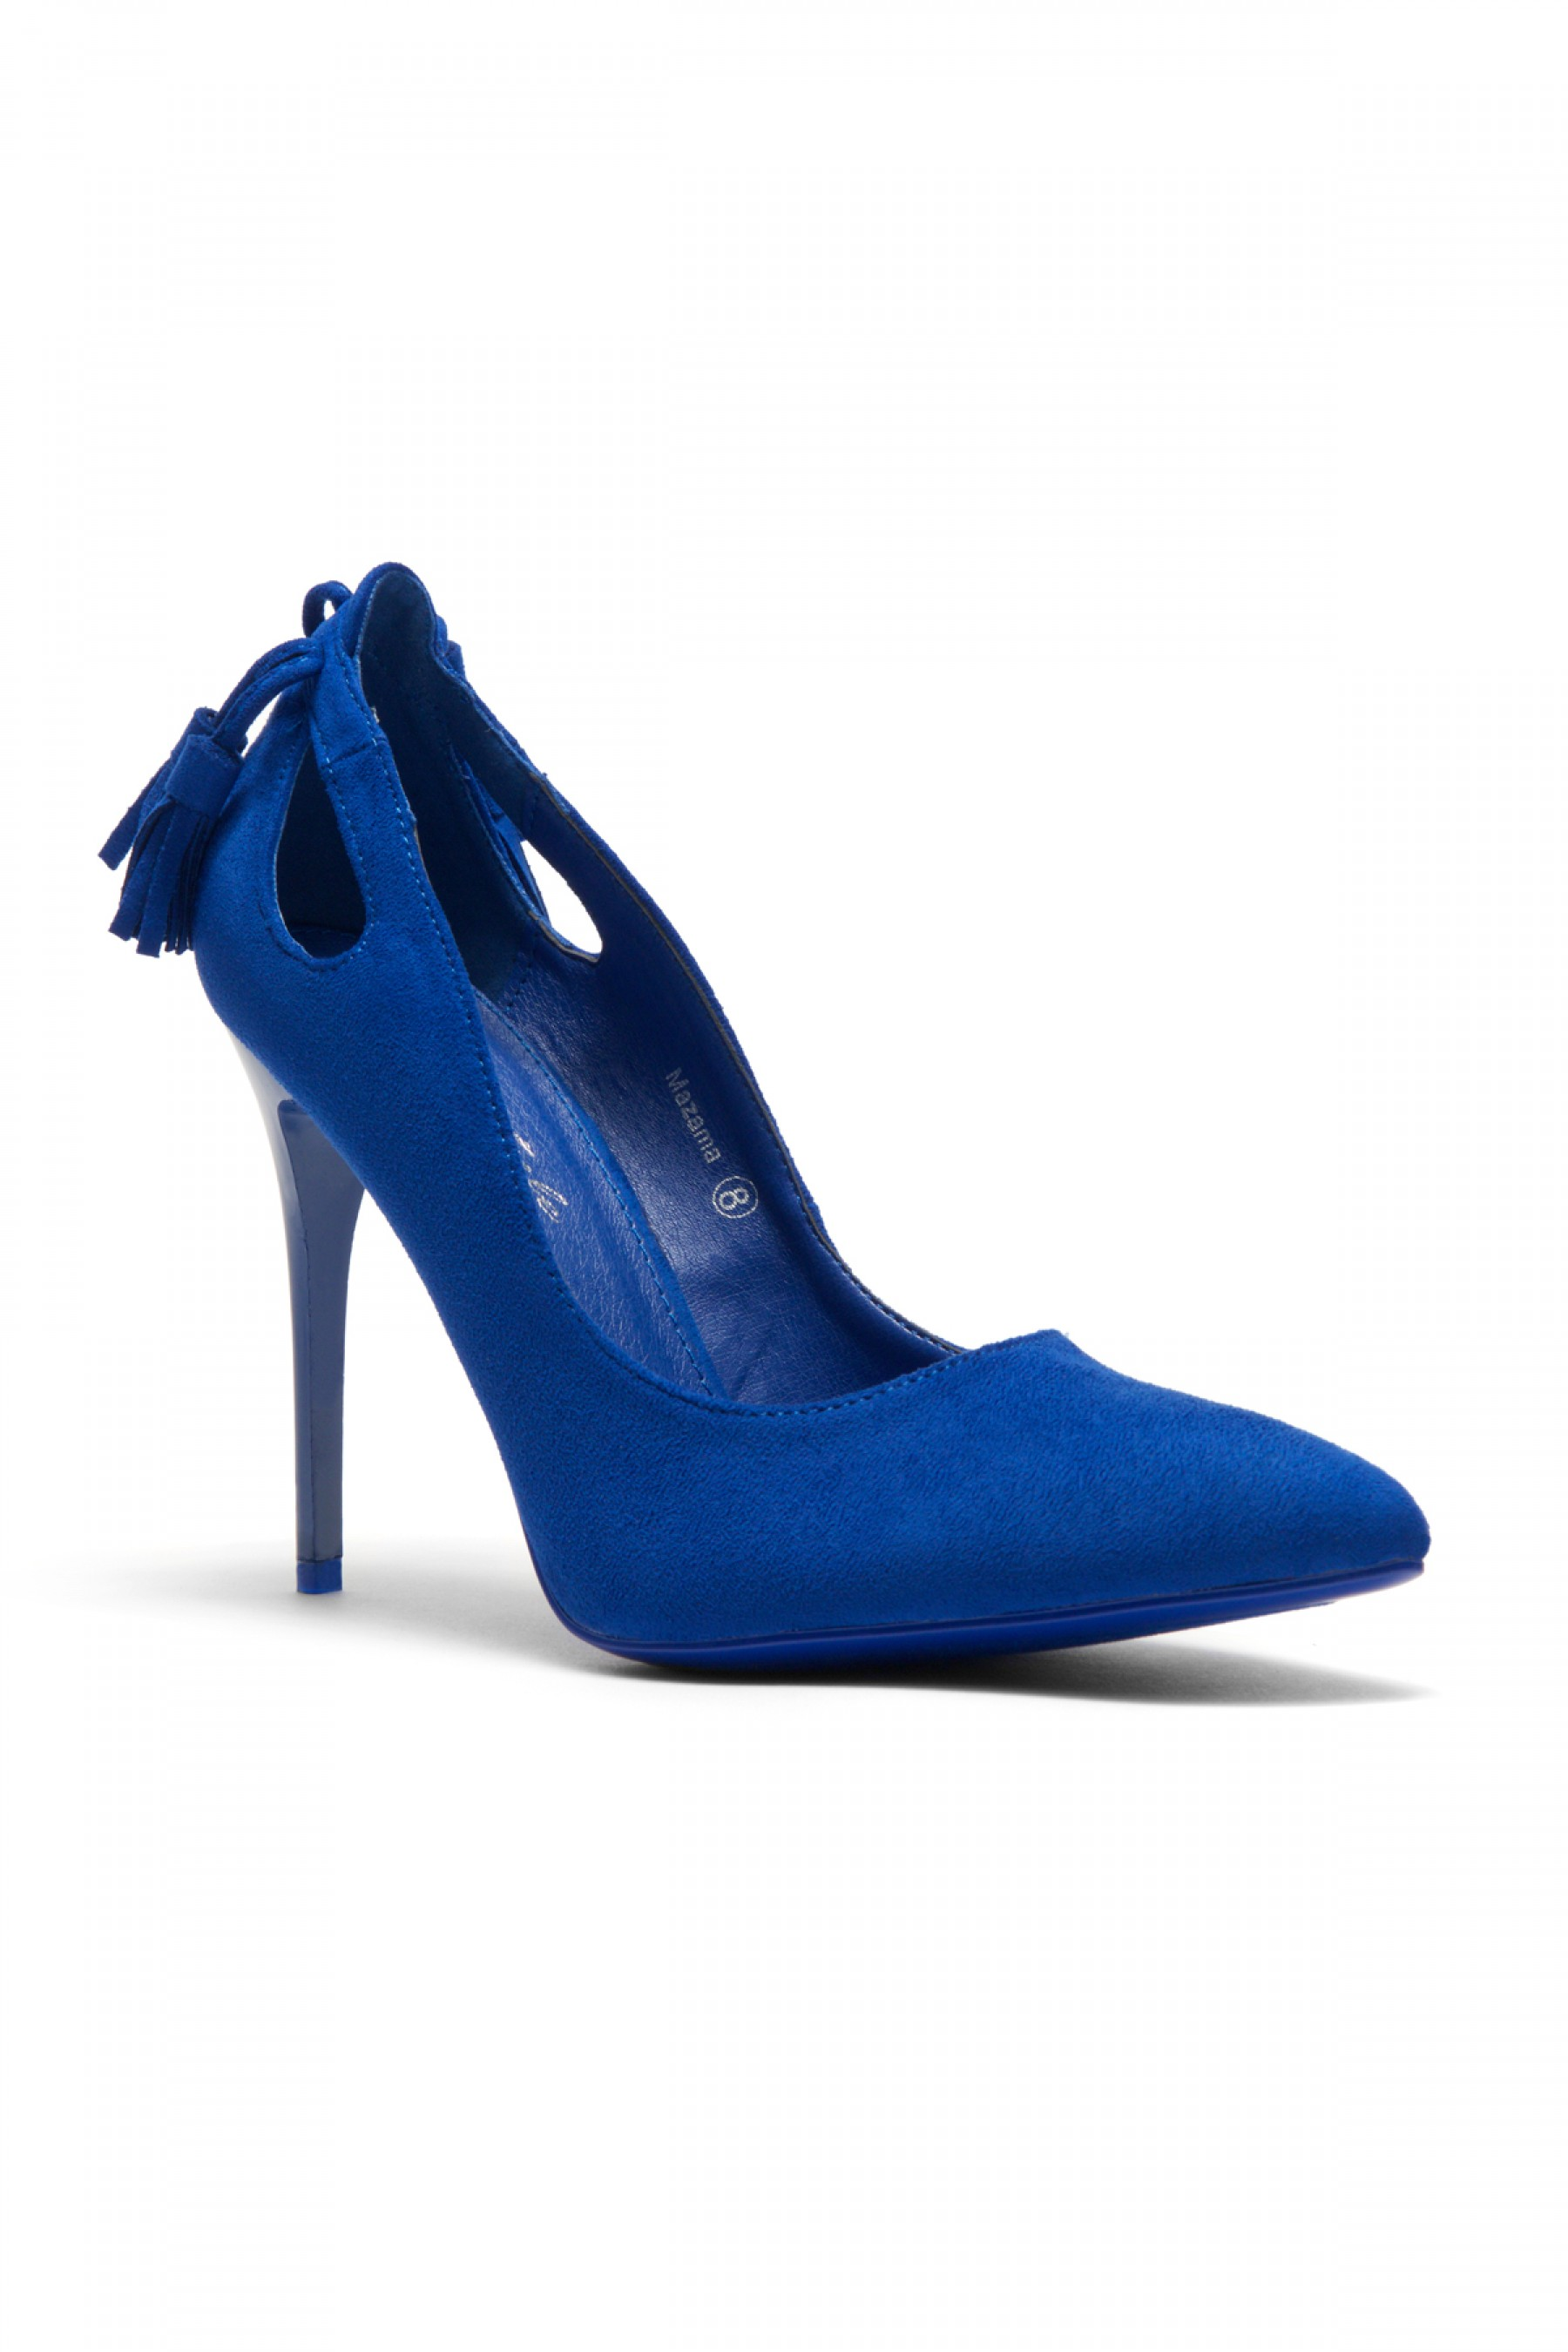 Women's Royale Blue Mazama 4-inch Pump Heel with Tassled Back